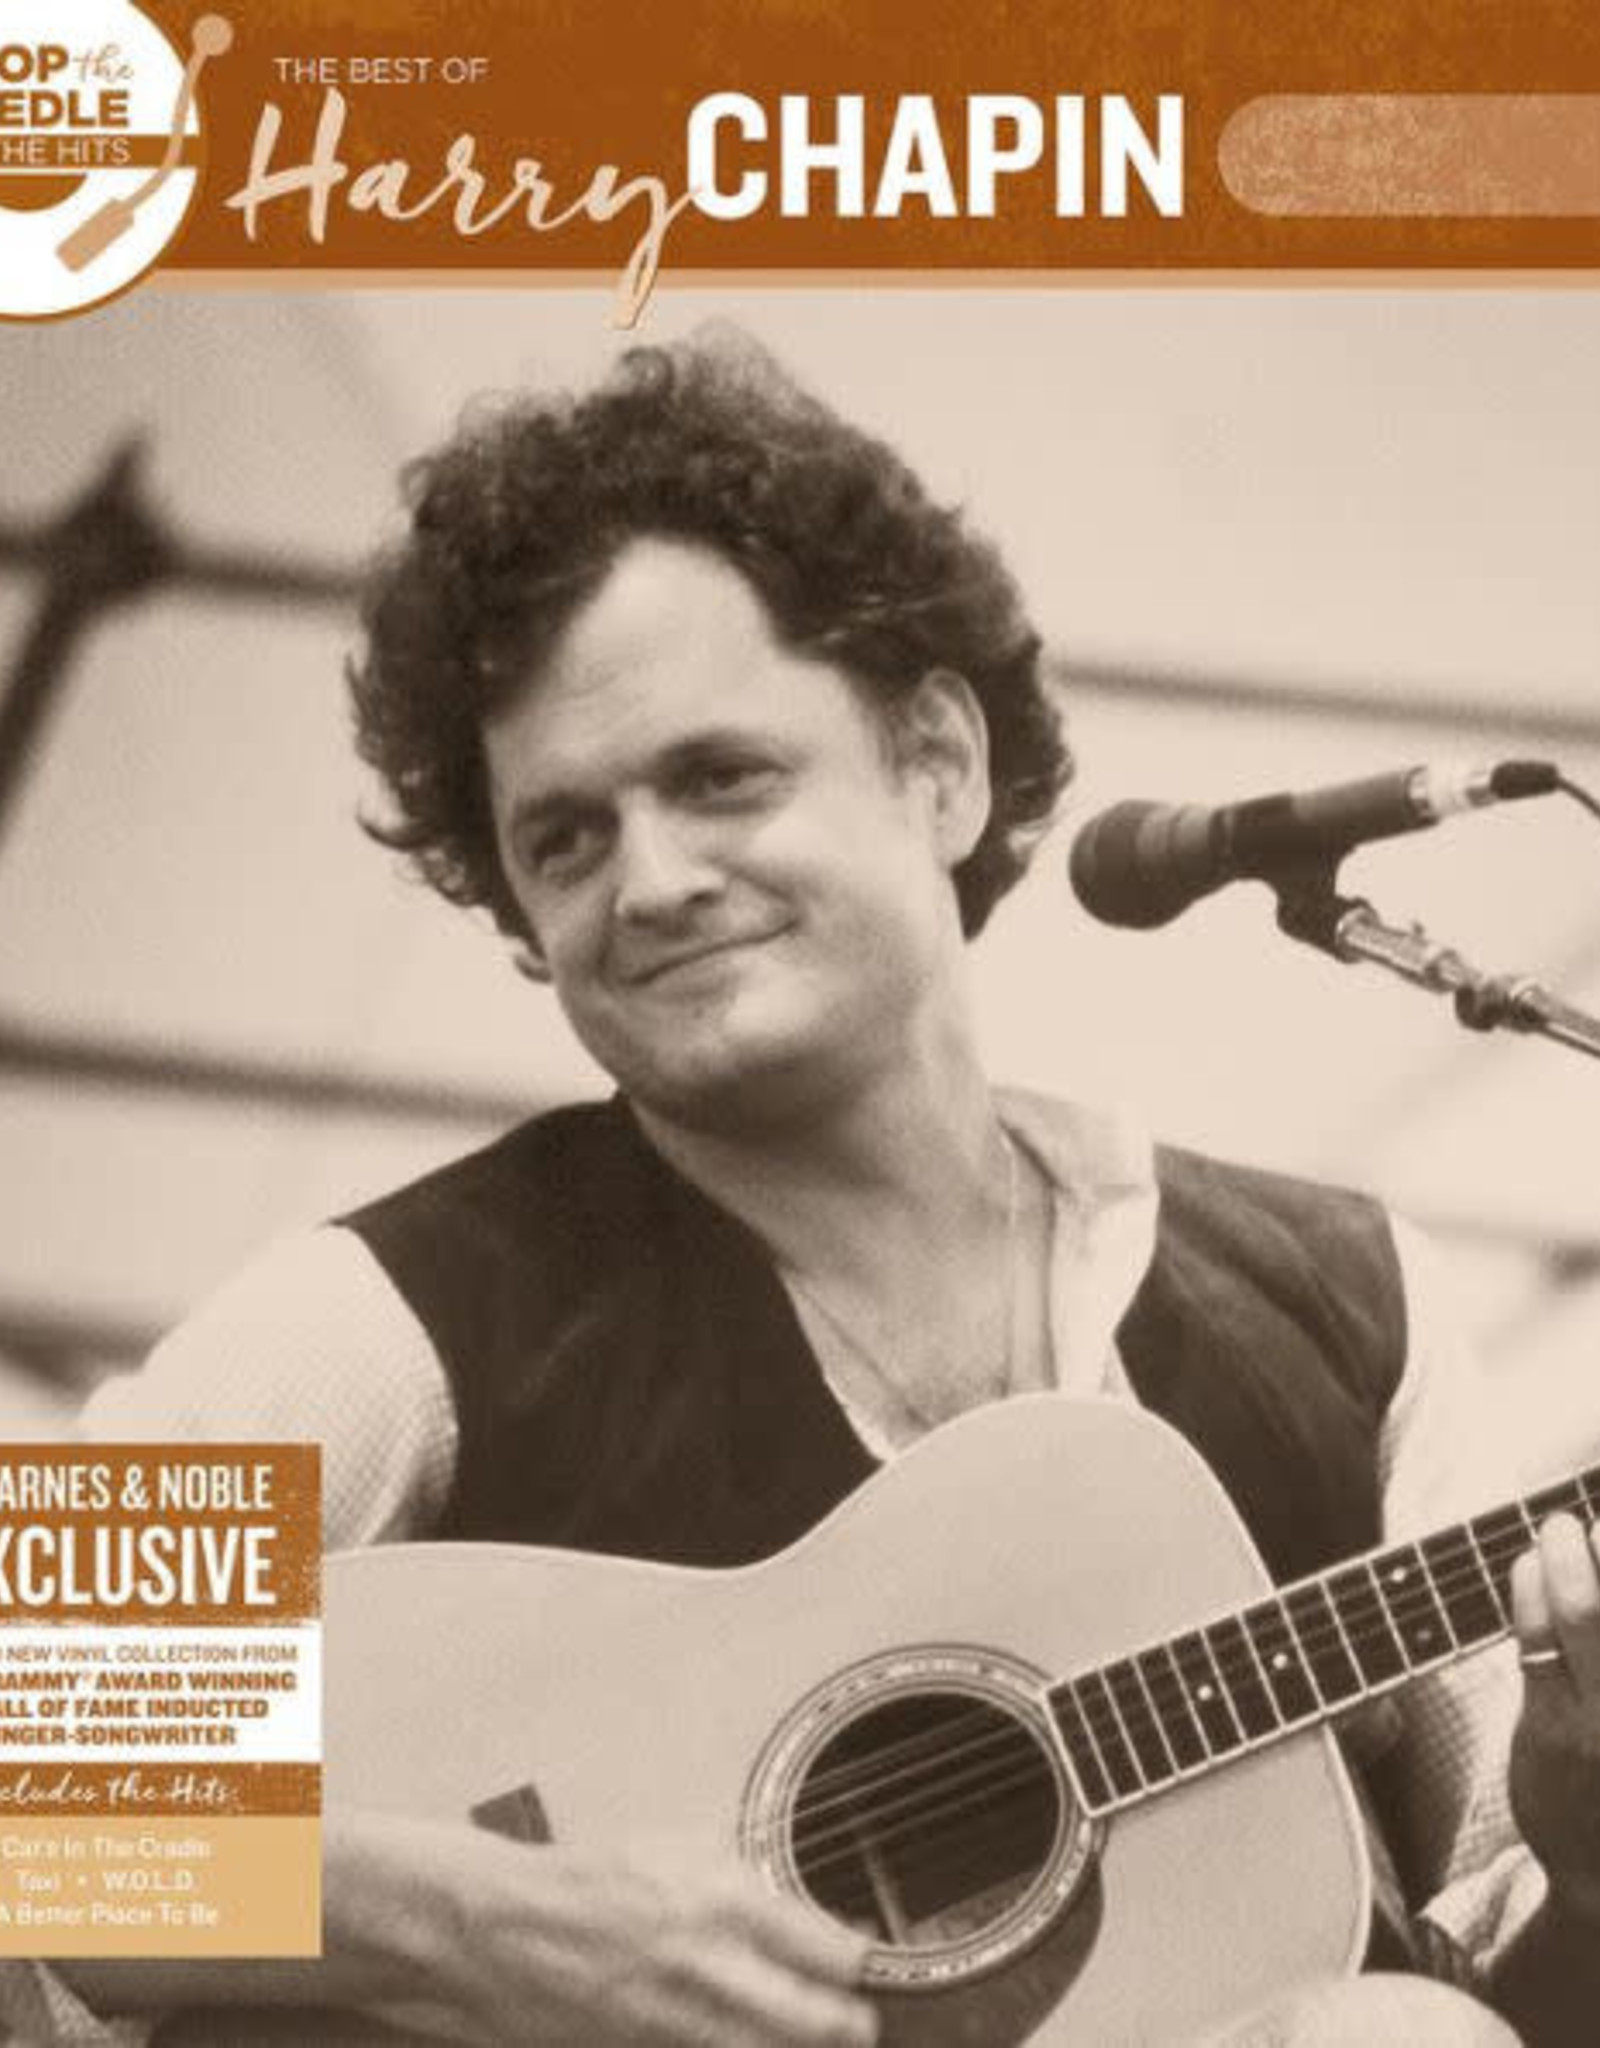 Harry Chapin - The Best of Harry Chapin